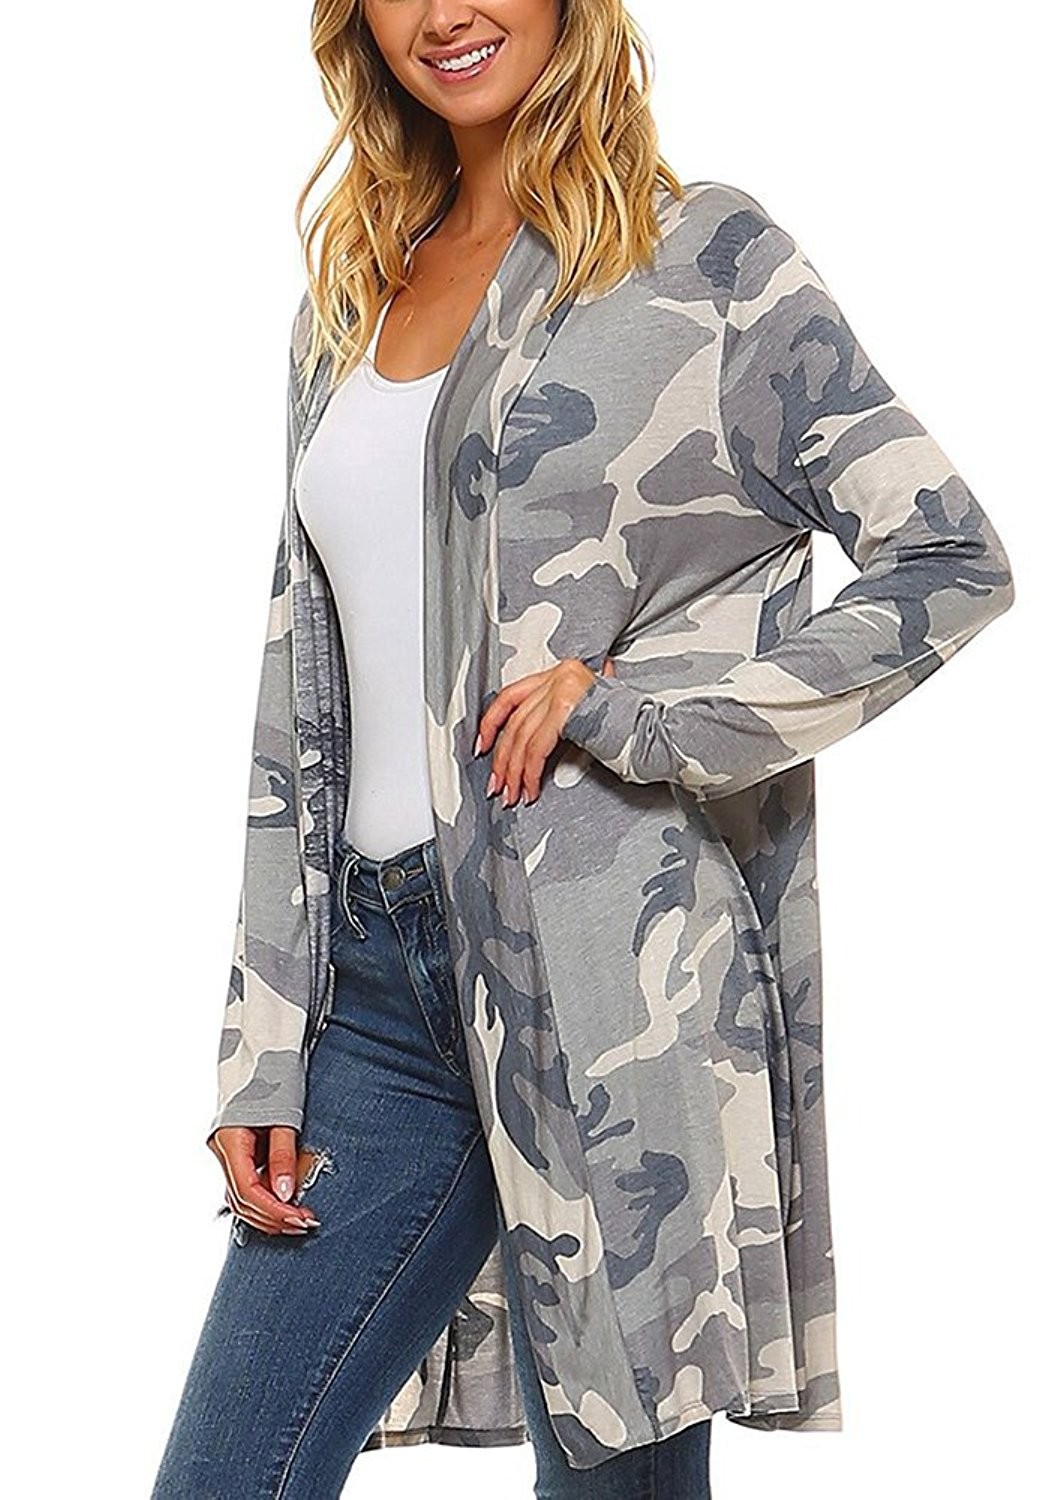 Pxmoda Womens Casual Long Sleeve Boho Floral Print Cardigan Warm Wrap Kimono Outwear